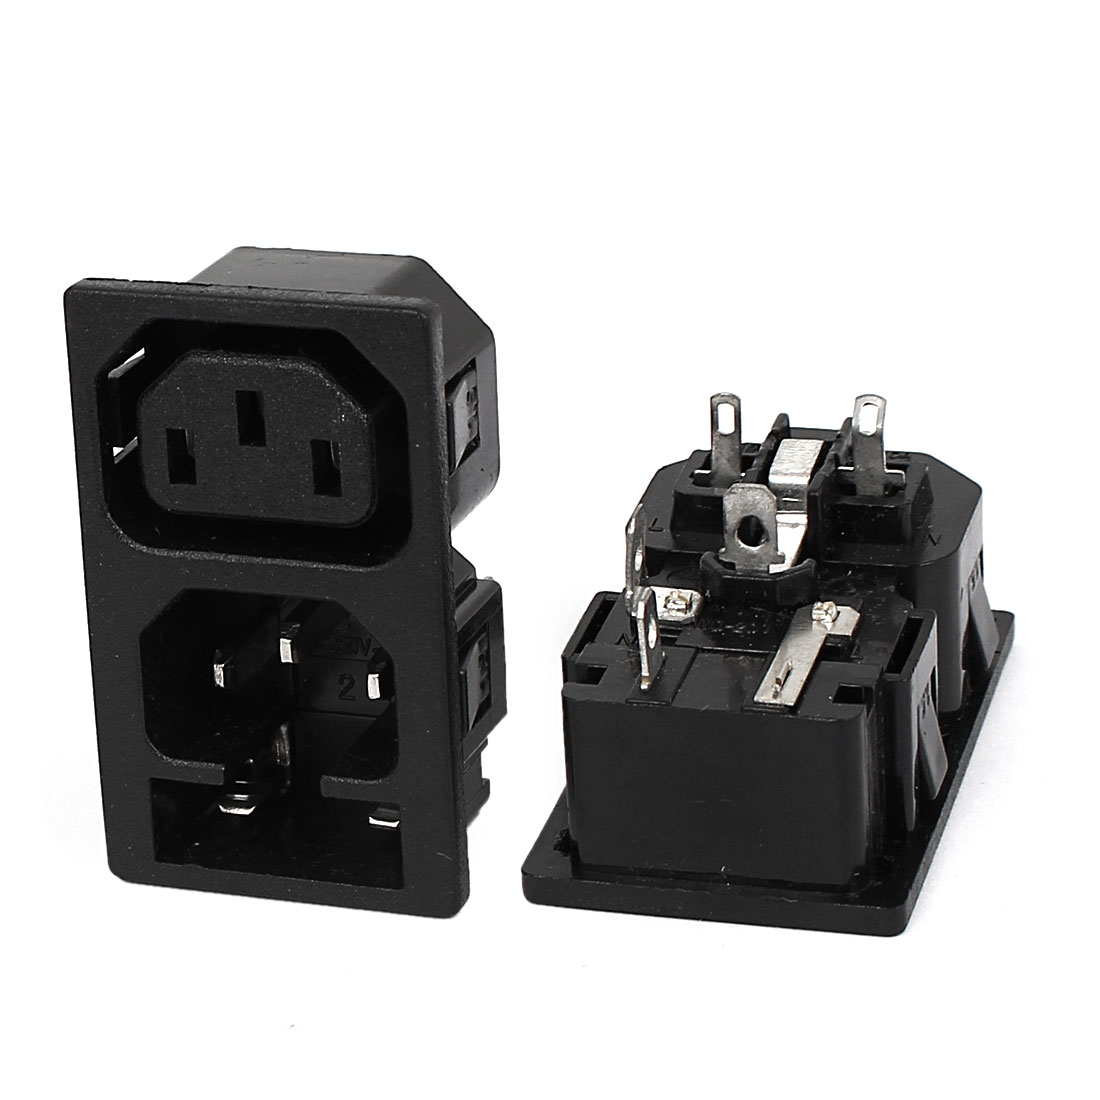 2Pcs AC250V 10A WD-201 1 Male 1 Female Snap-In IEC Connector Power Socket